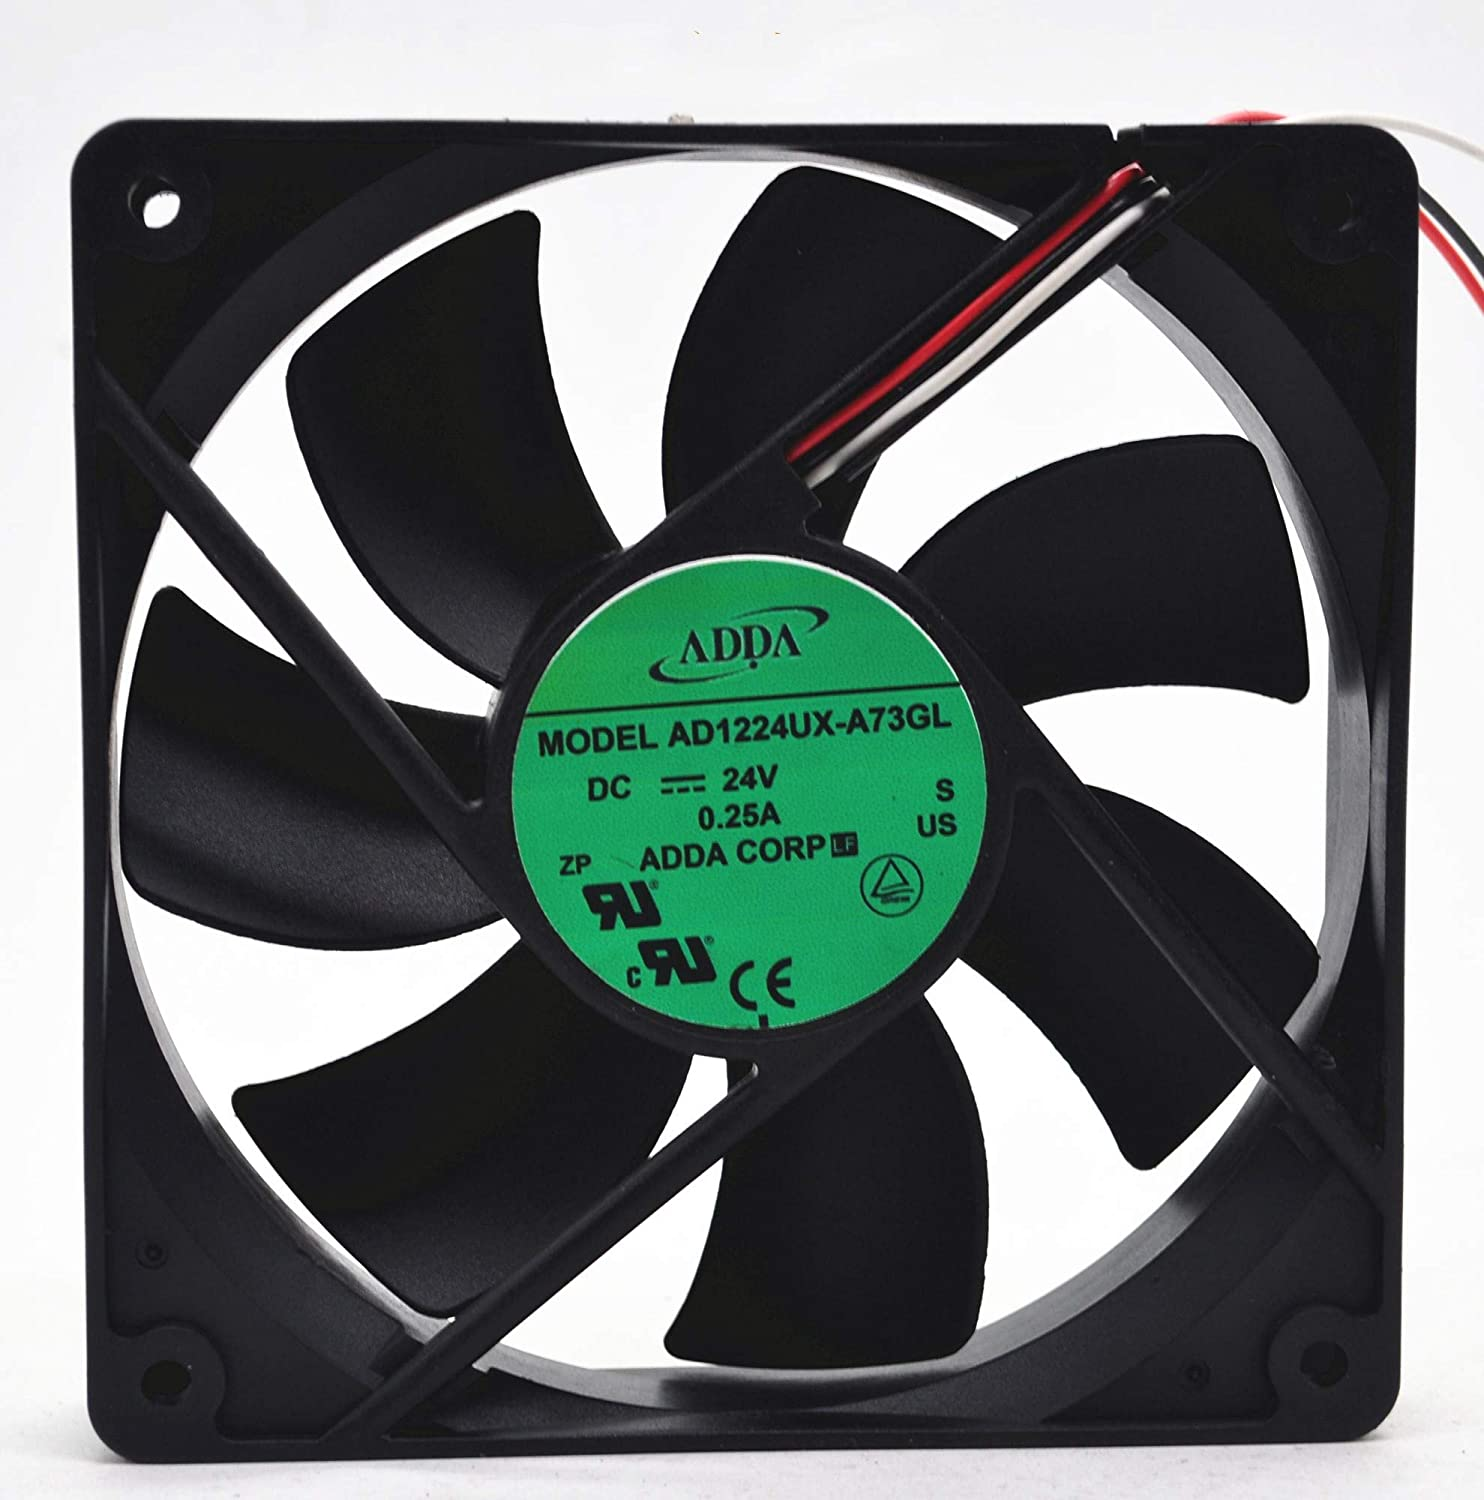 for AD1224UX-A73GL 24V 0.25A Super sale period limited 12025 ADDA 12CM Cooling Fan 3-Wire Max 72% OFF